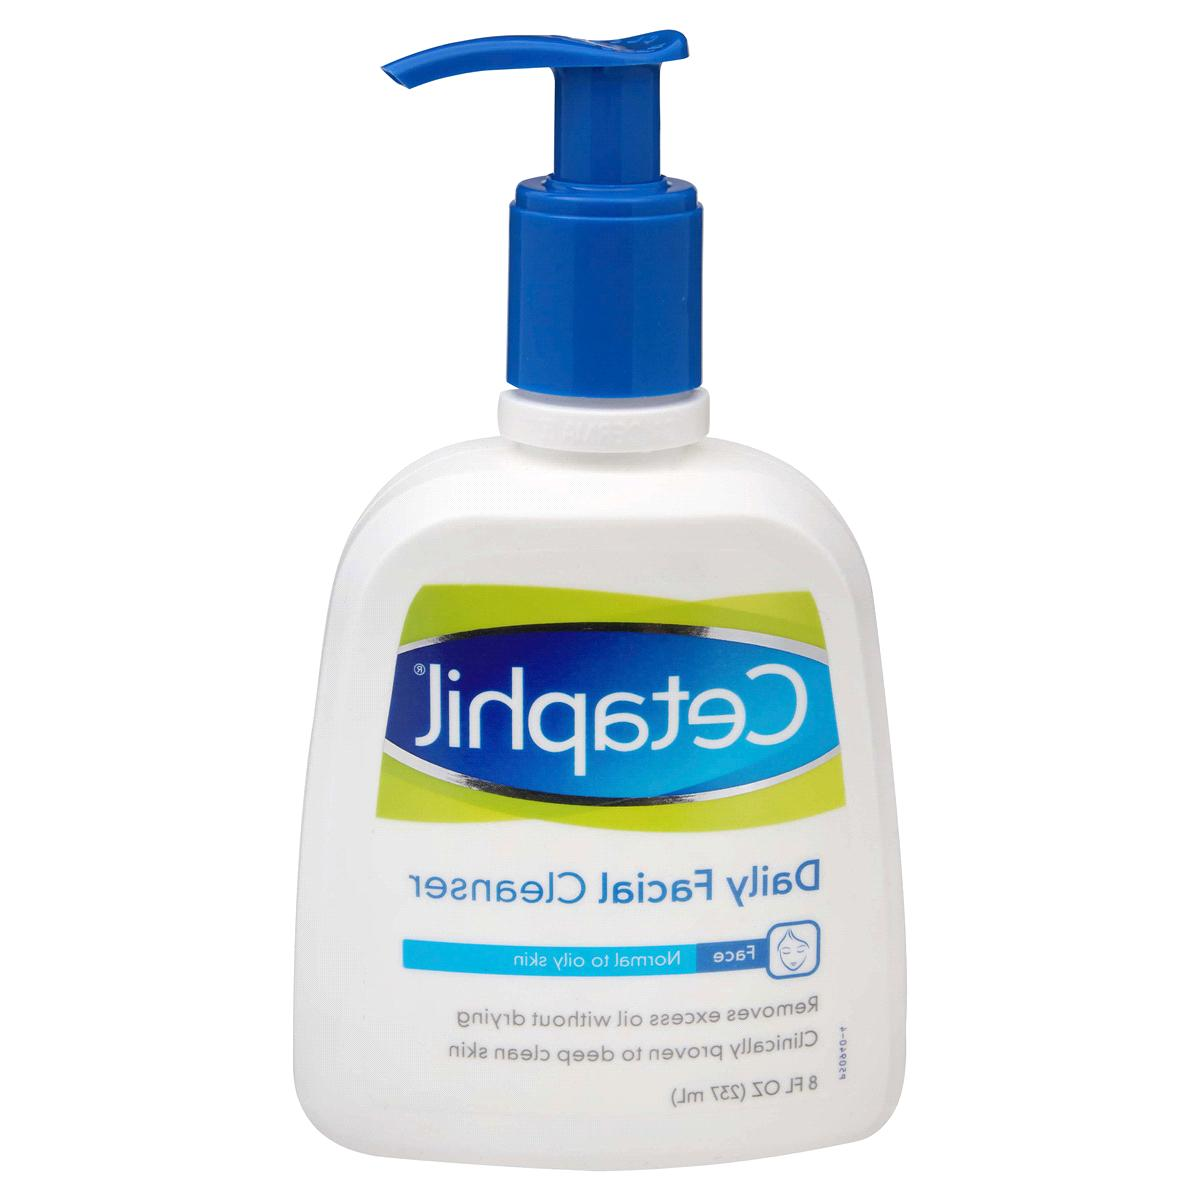 new daily facial cleanser 8 oz normal